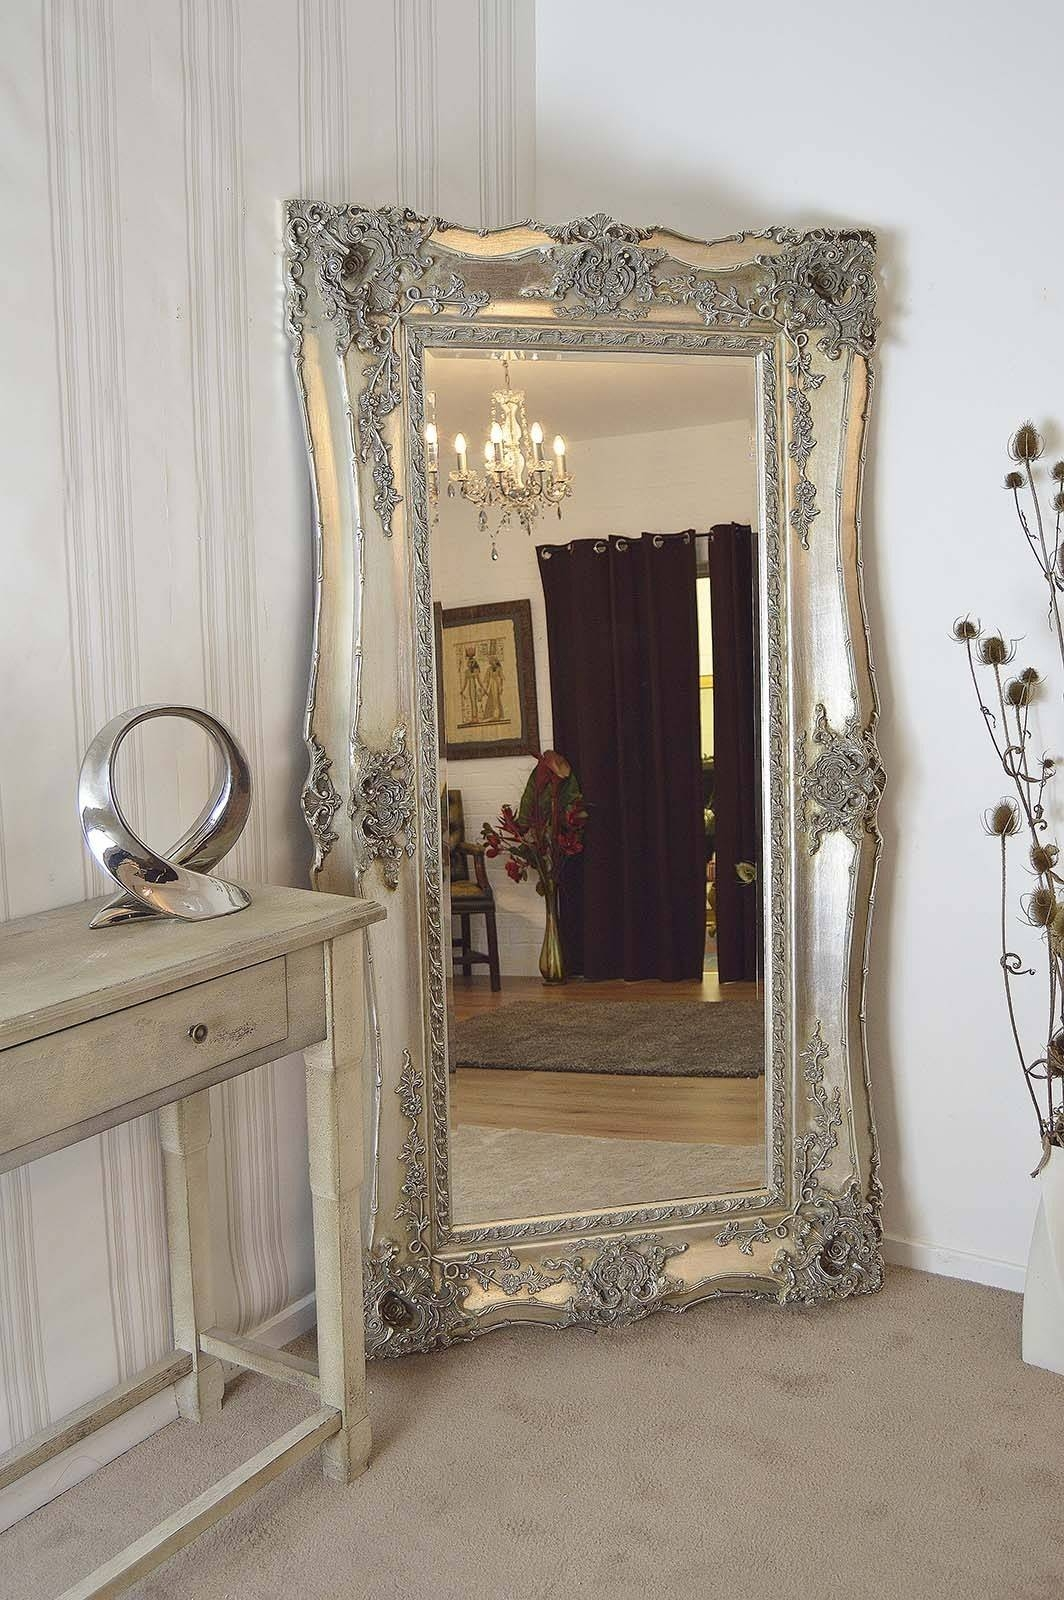 Homeware: Oval Full Length Standing Mirror | Large Floor Mirrors with Large Floor Standing Mirrors (Image 17 of 25)